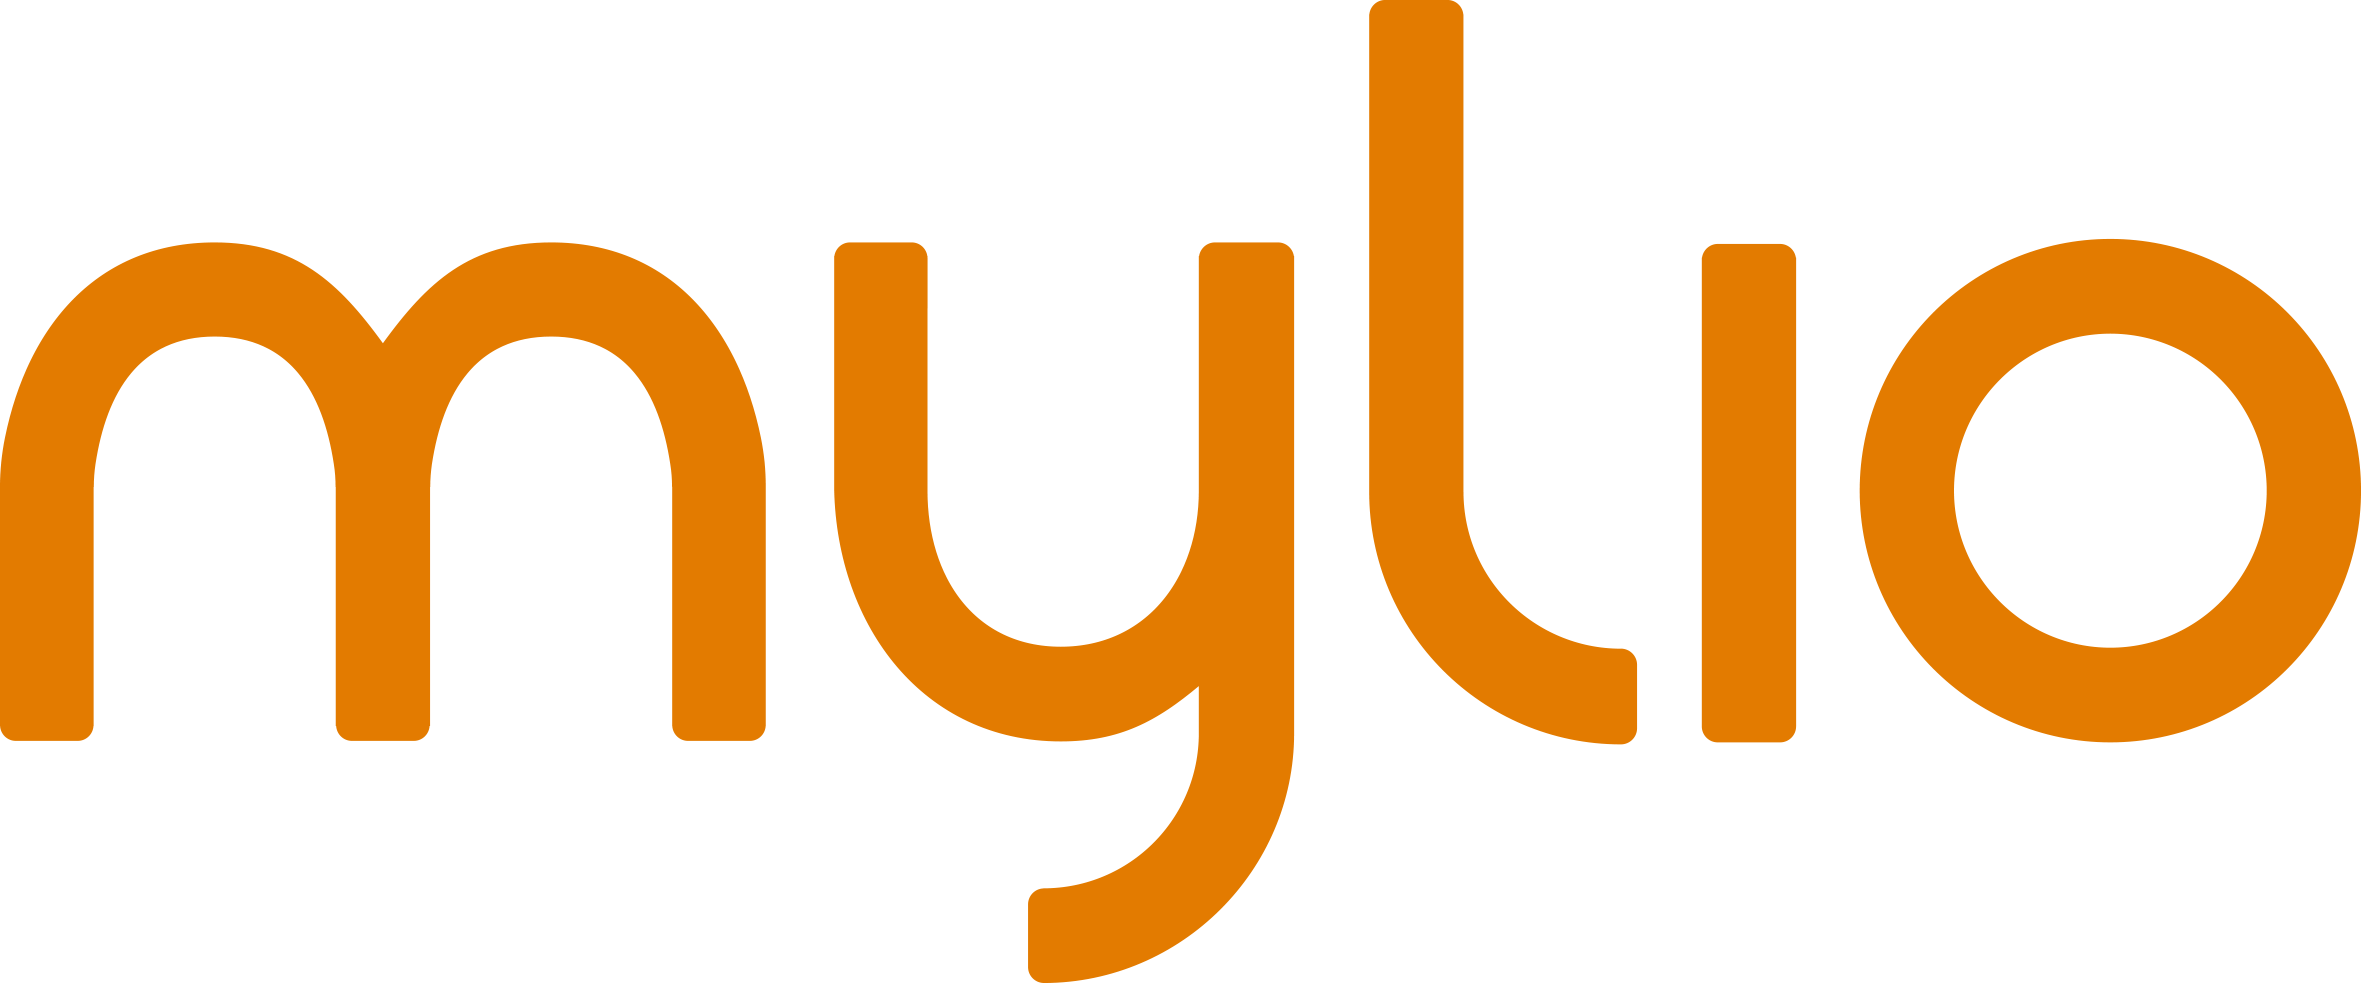 0814_myliologo_All-copy-or.png